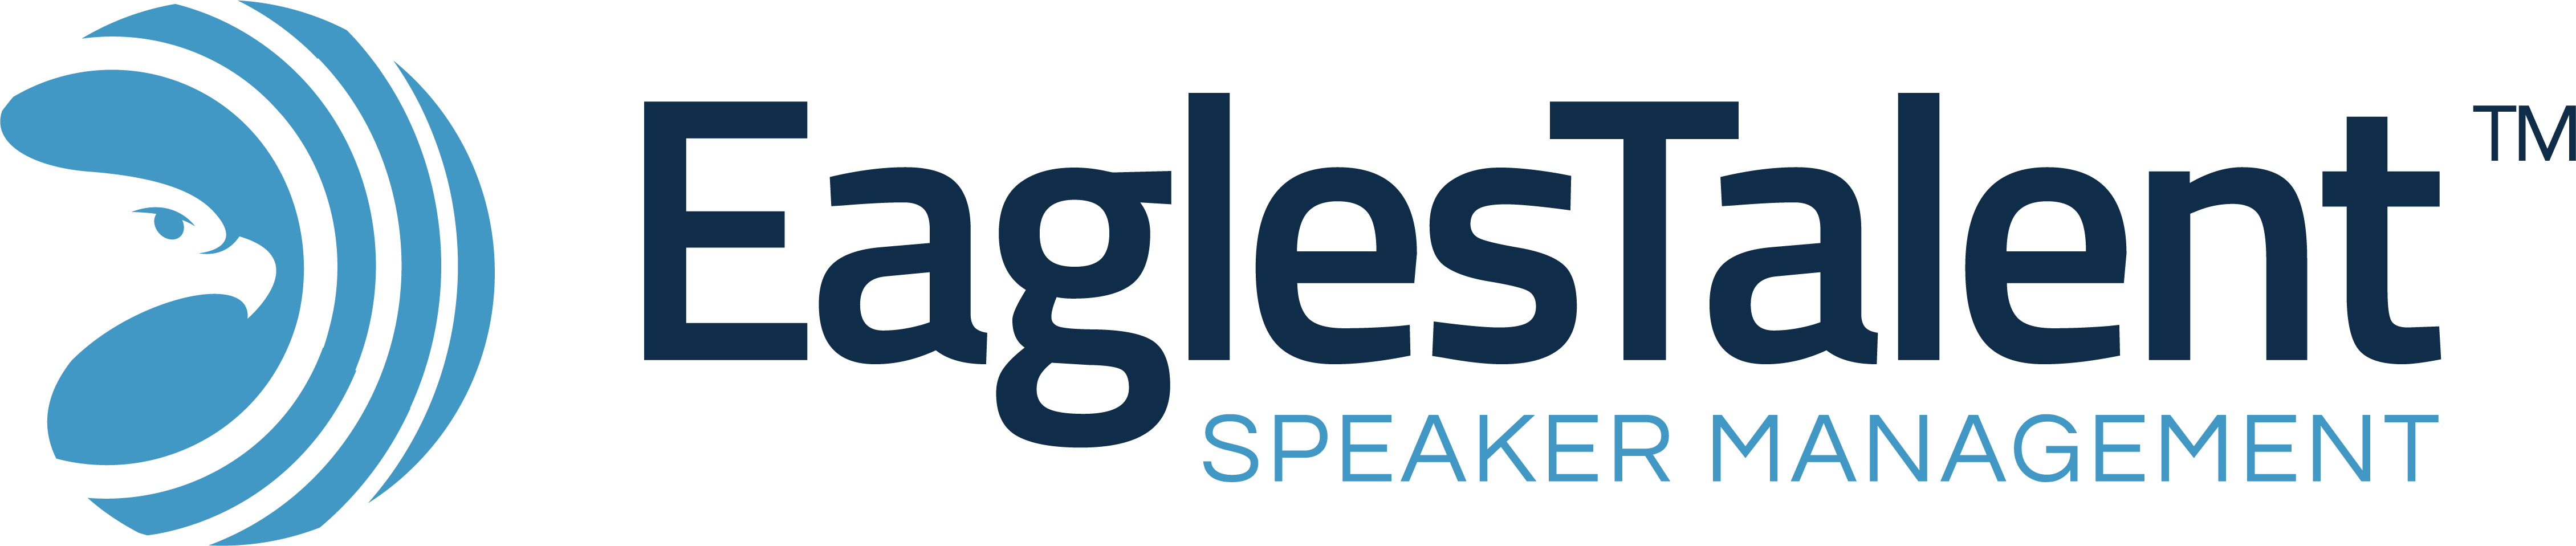 Eagles Talent Speaker Management